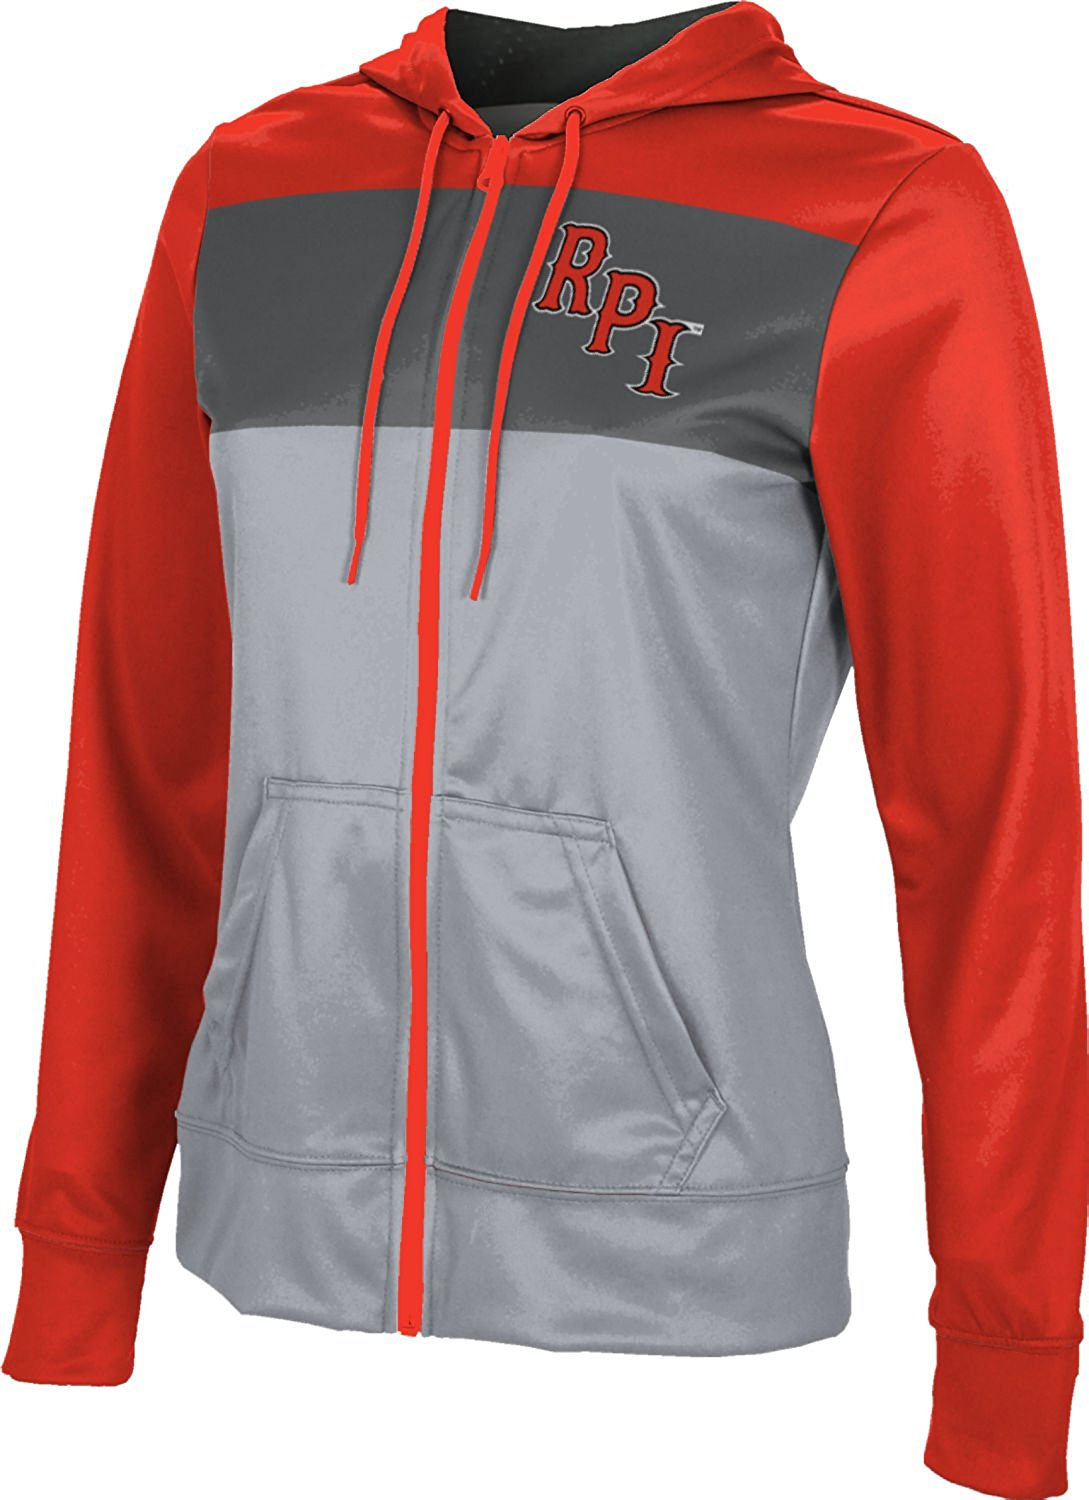 Rensselaer Polytechnic Institute University Women's Fullzip Hoodie - Prime